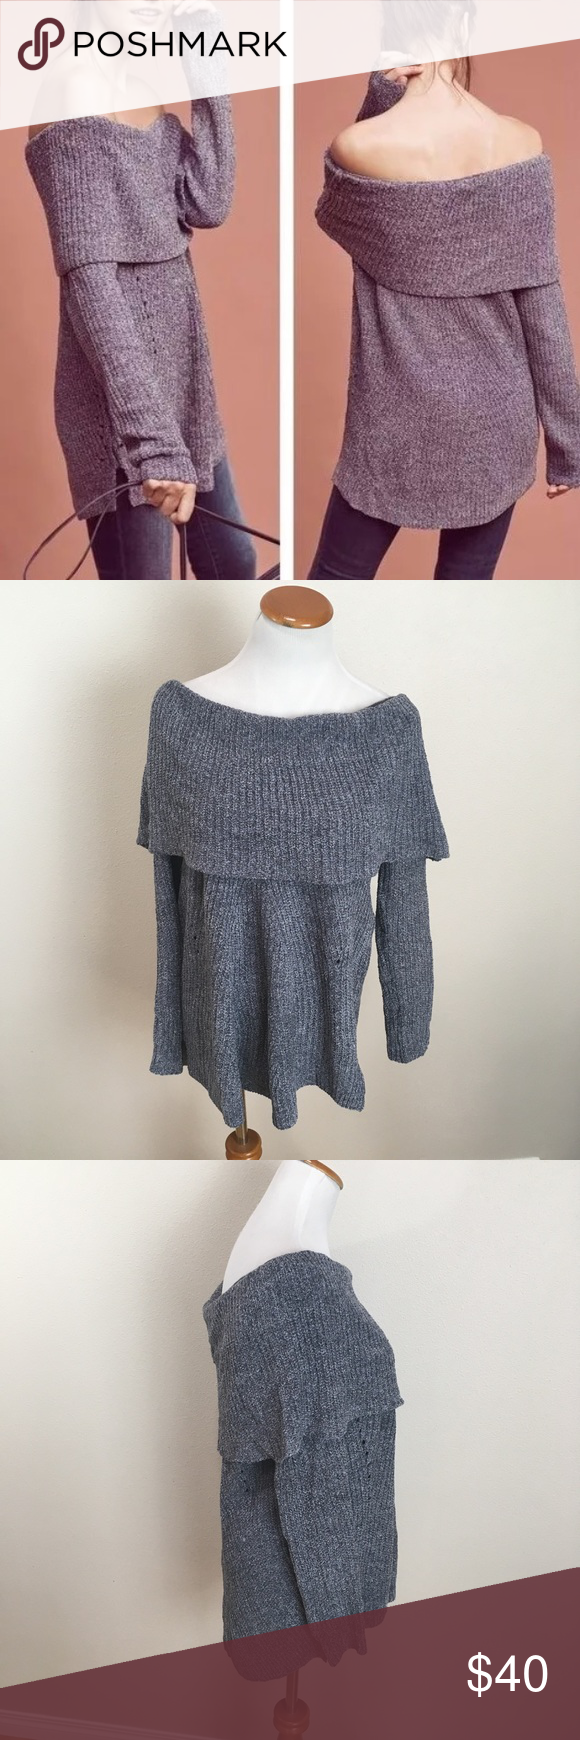 Anthro MOTH Off Shoulder Lucerne FoldNeck Sweater | Lucerne, Moth ...